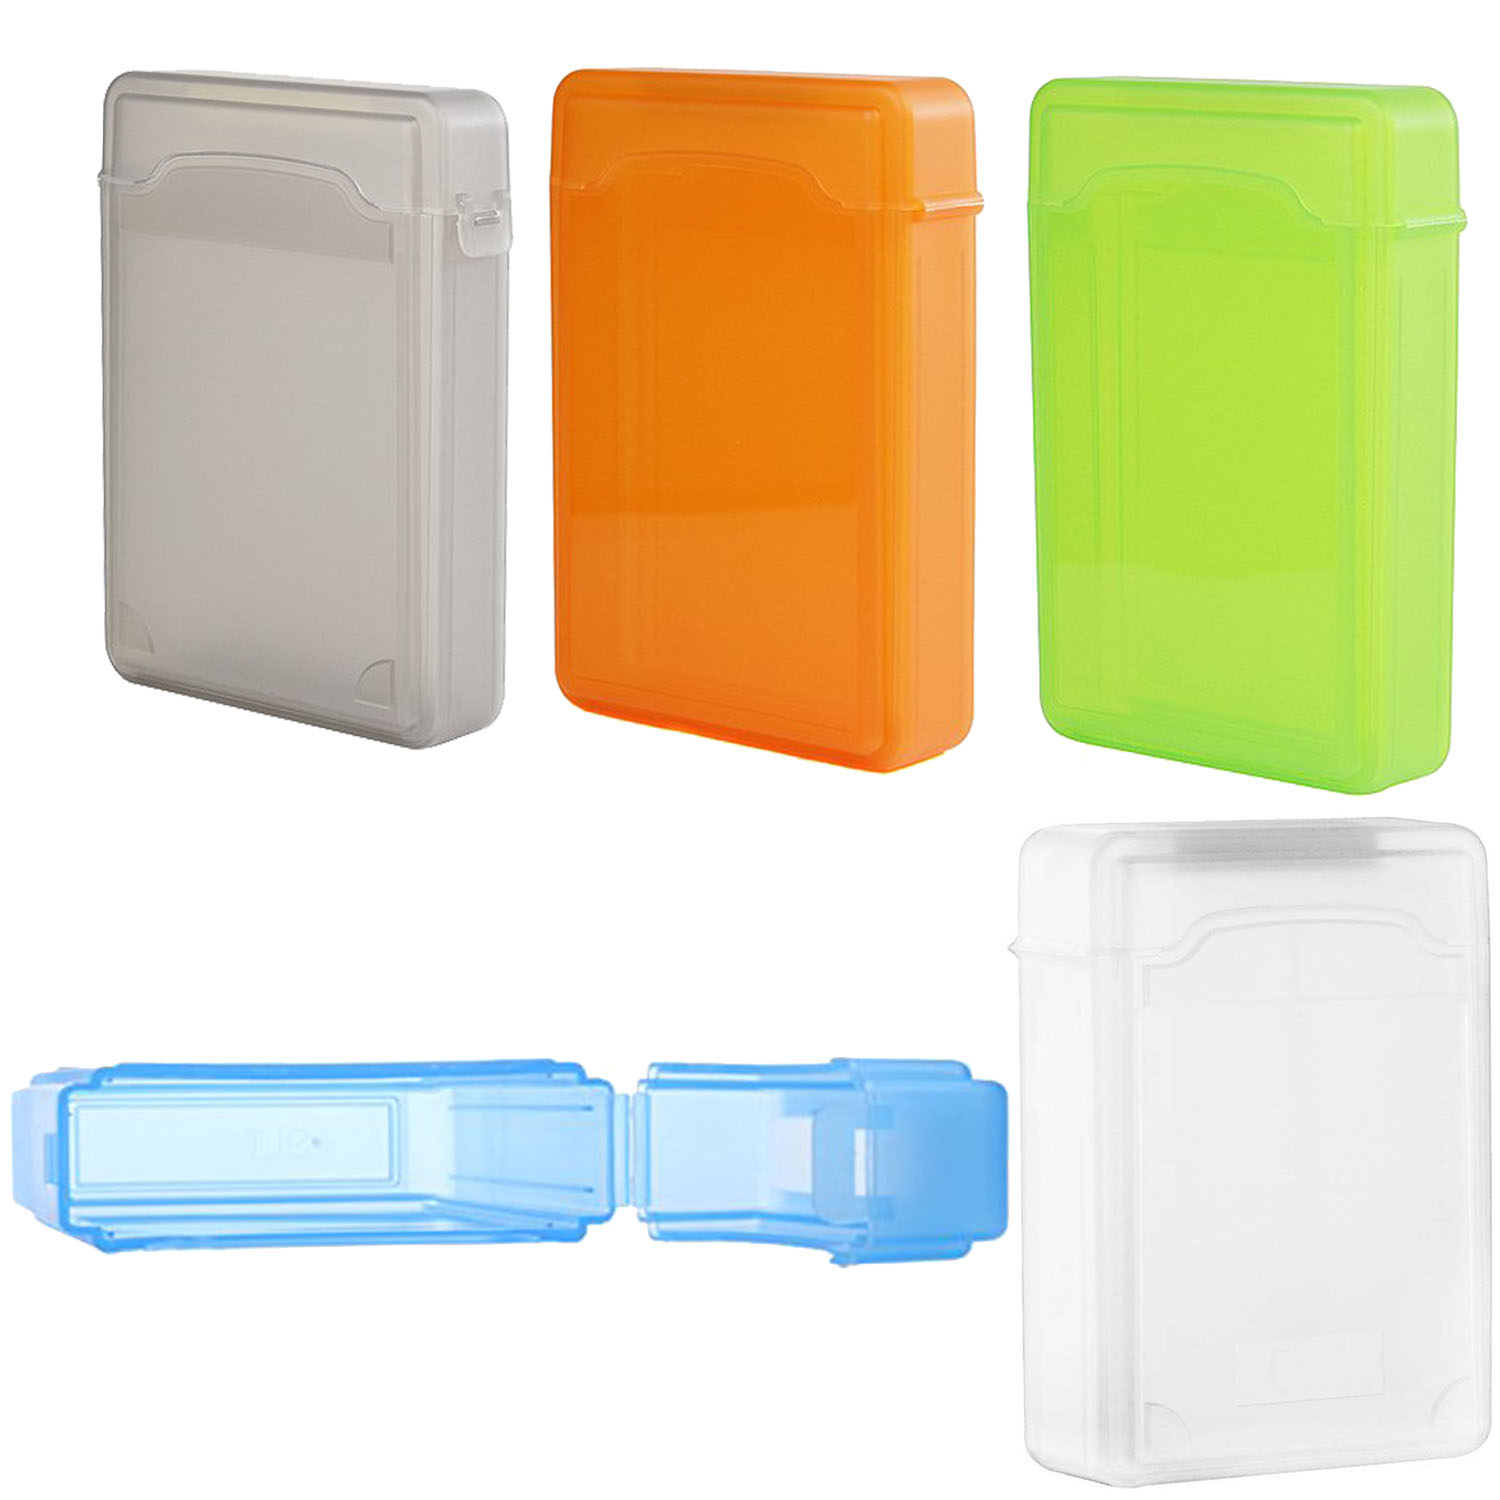 3.5 Inch for IDE HDD SATA Hard Drive Case Protector Plastic Storage Box